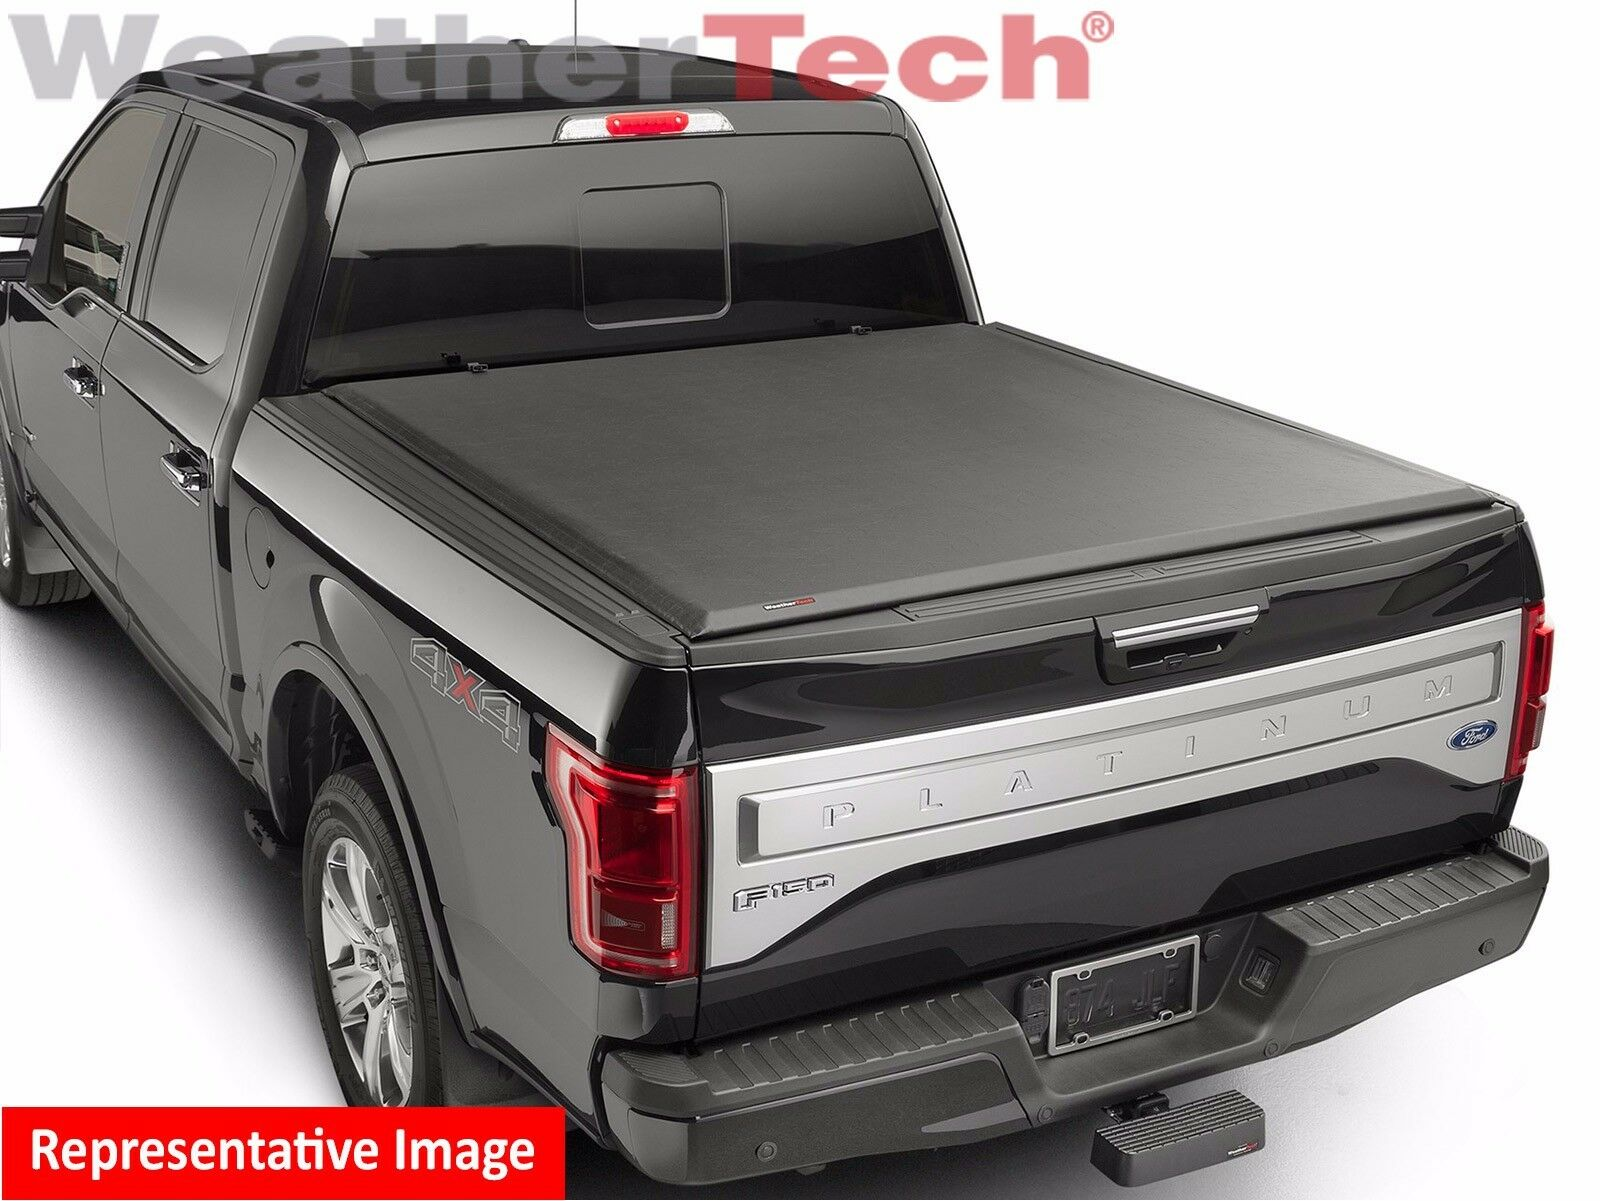 Weathertech Roll Up Truck Bed Cover For 2020 Jeep Gladiator Check Fit Notes Ebay